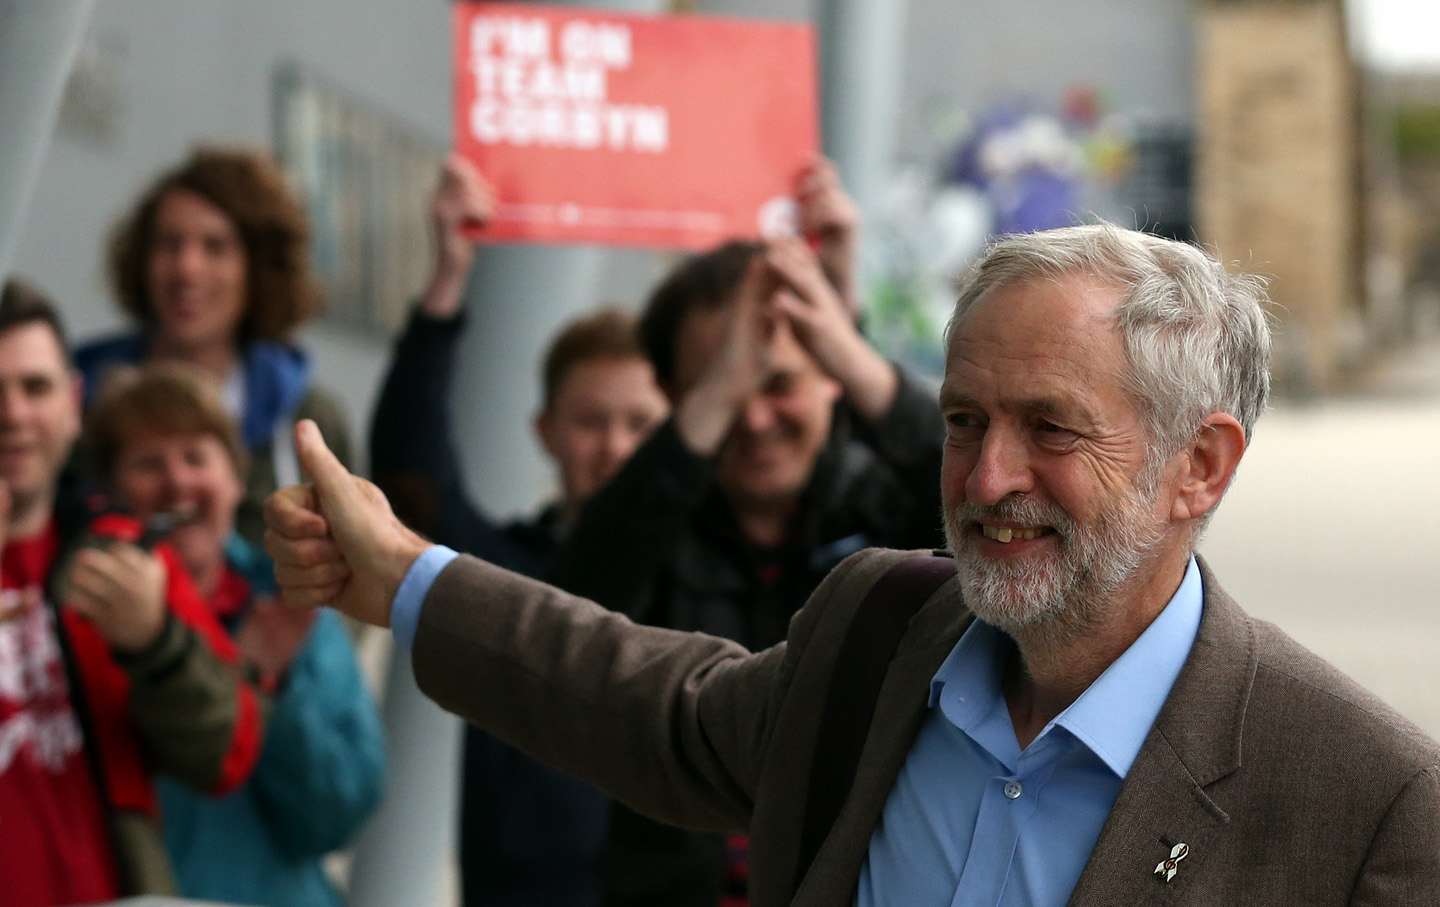 Jeremy Corbyn applauds the audience and supporters during a rally in London on September 10, 2015.  (Reuters / Peter Nicholls)